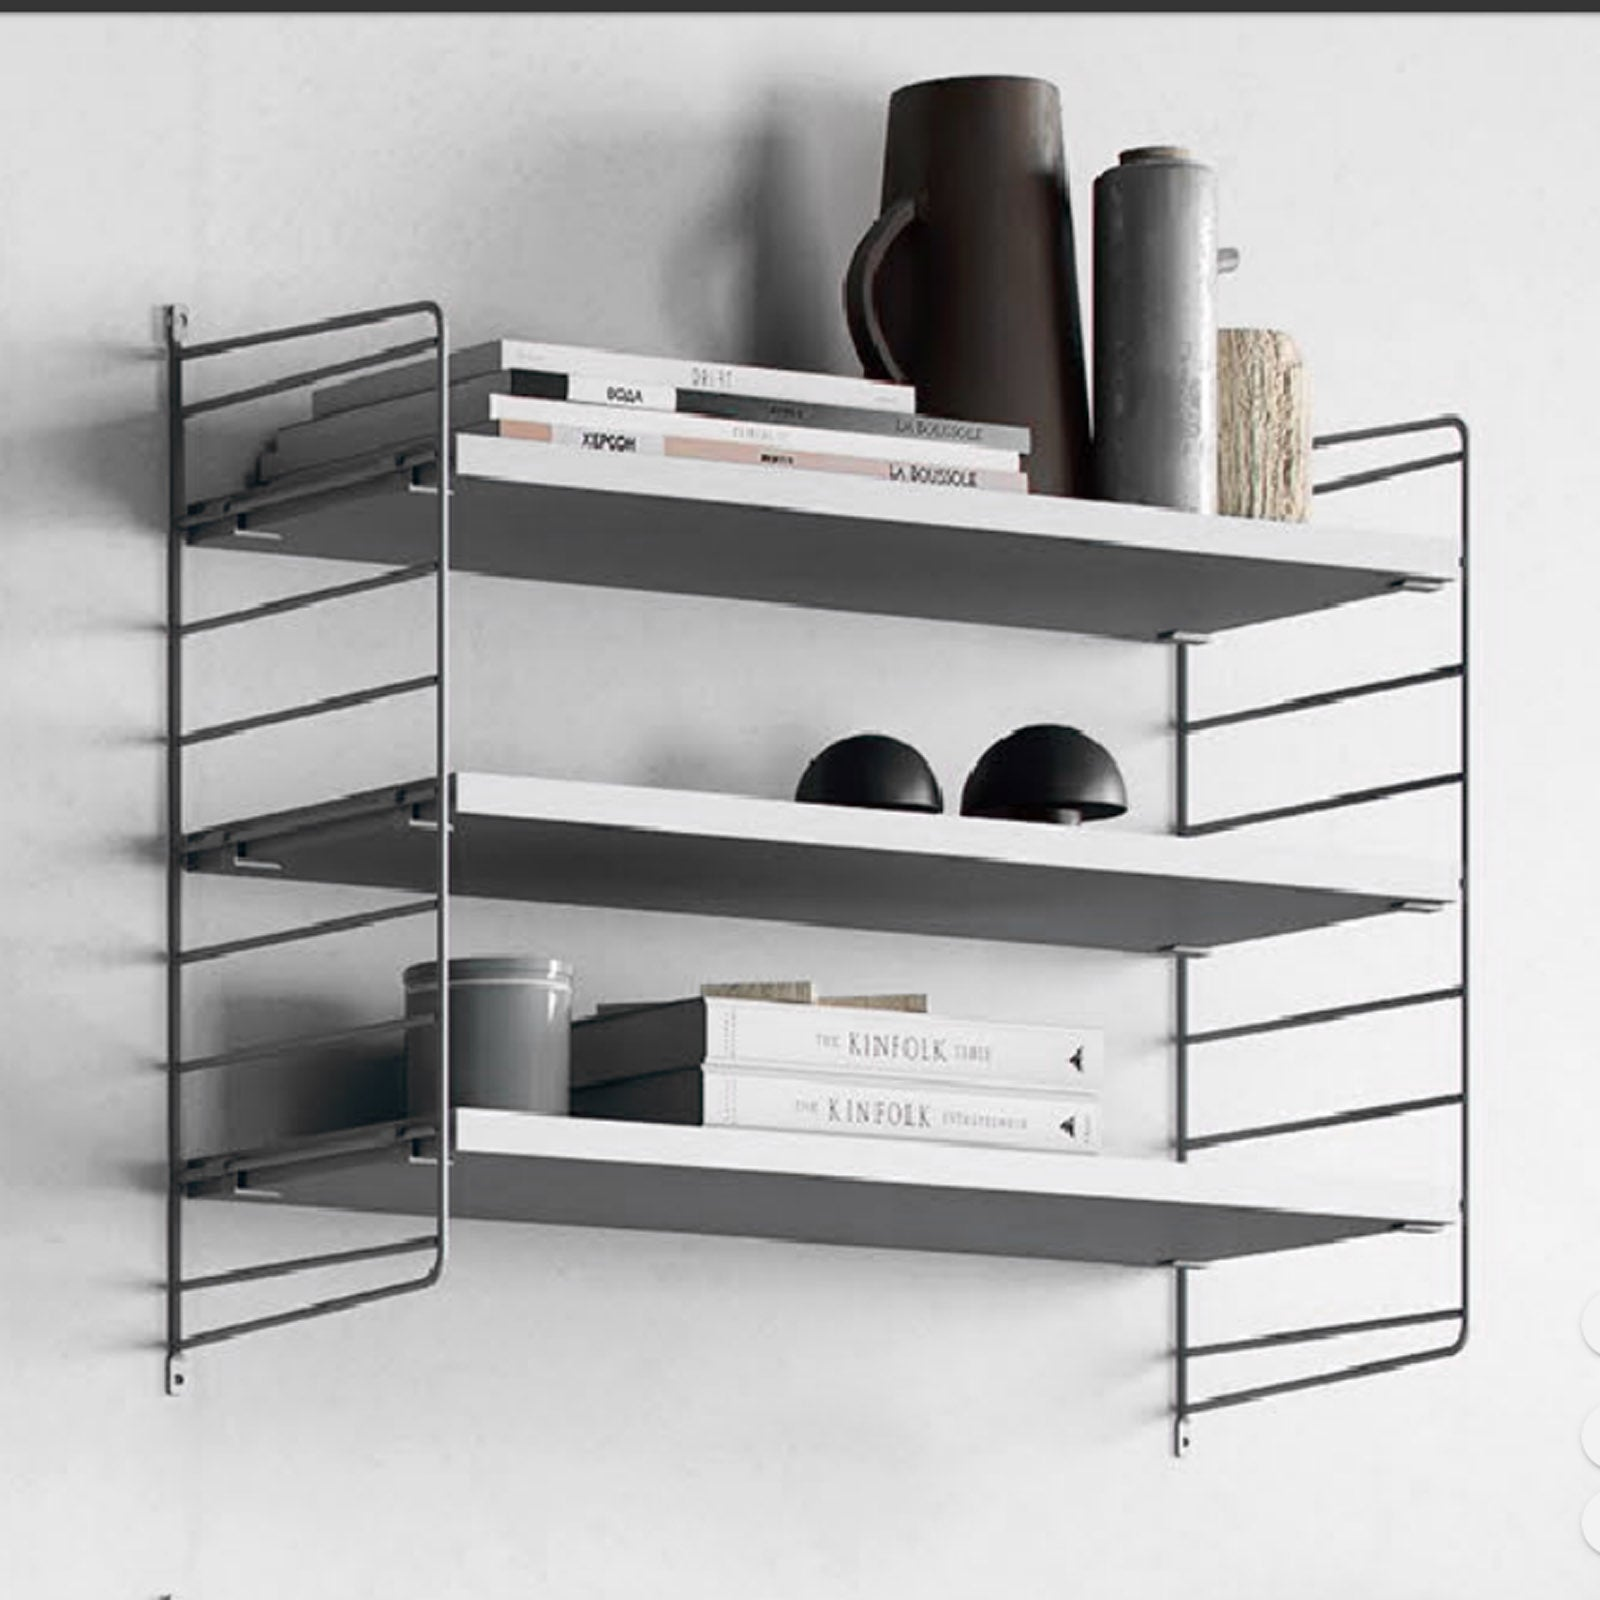 Nice  Modular Shelf  LL-129 -  رف معياري لطيف - Shop Online Furniture and Home Decor Store in Dubai, UAE at ebarza